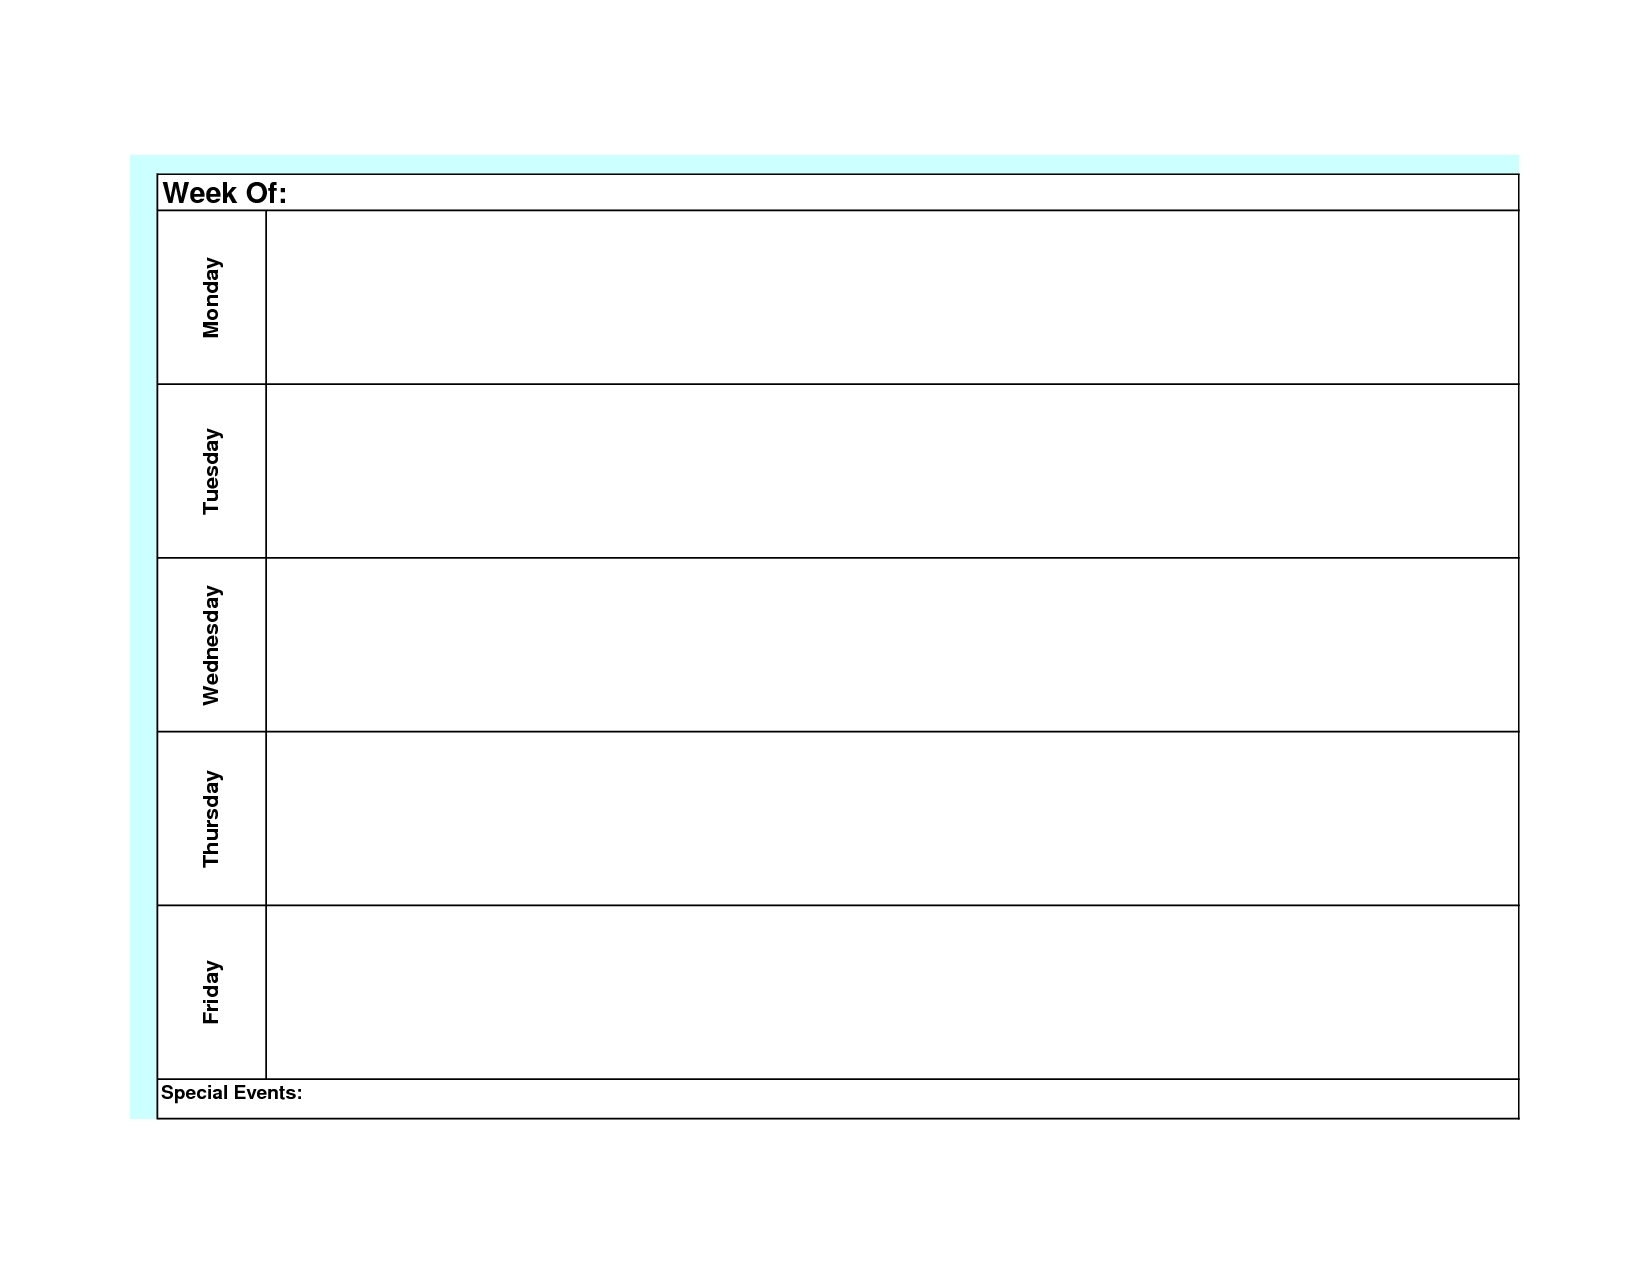 Monday To Friday Timetable Template | Template Calendar Printable throughout Monday To Friday Timetable Template